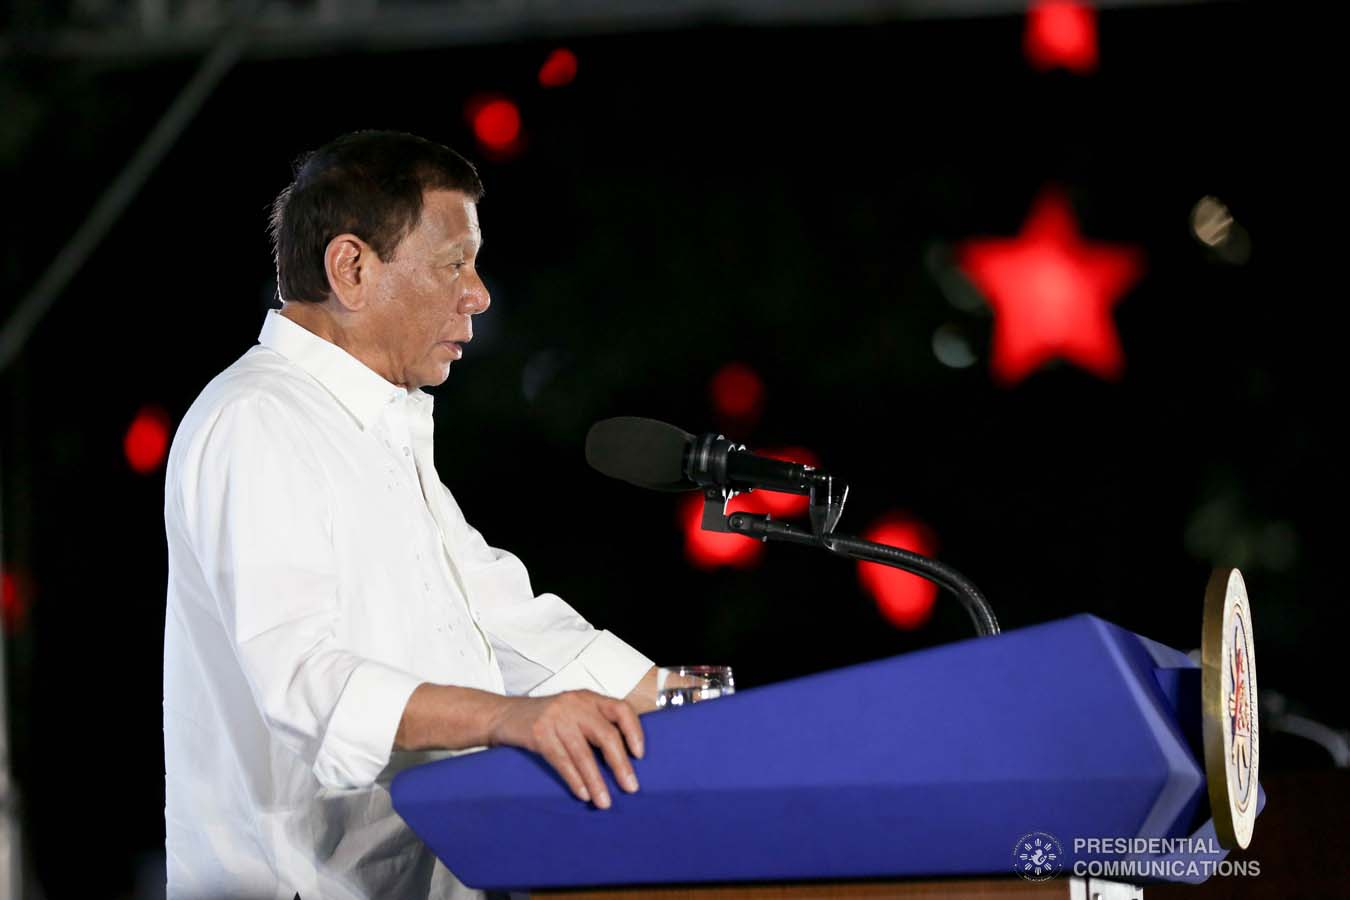 President Rodrigo Roa Duterte delivers his speech during the Thanksgiving party for the beneficiaries of the killed-in-action (KIA) soldiers and killed-in-police operation (KIPO) personnel under the Comprehensive Social Benefits Program at the Malacañan Palace on December 10, 2019. RICHARD MADELO/PRESIDENTIAL PHOTO